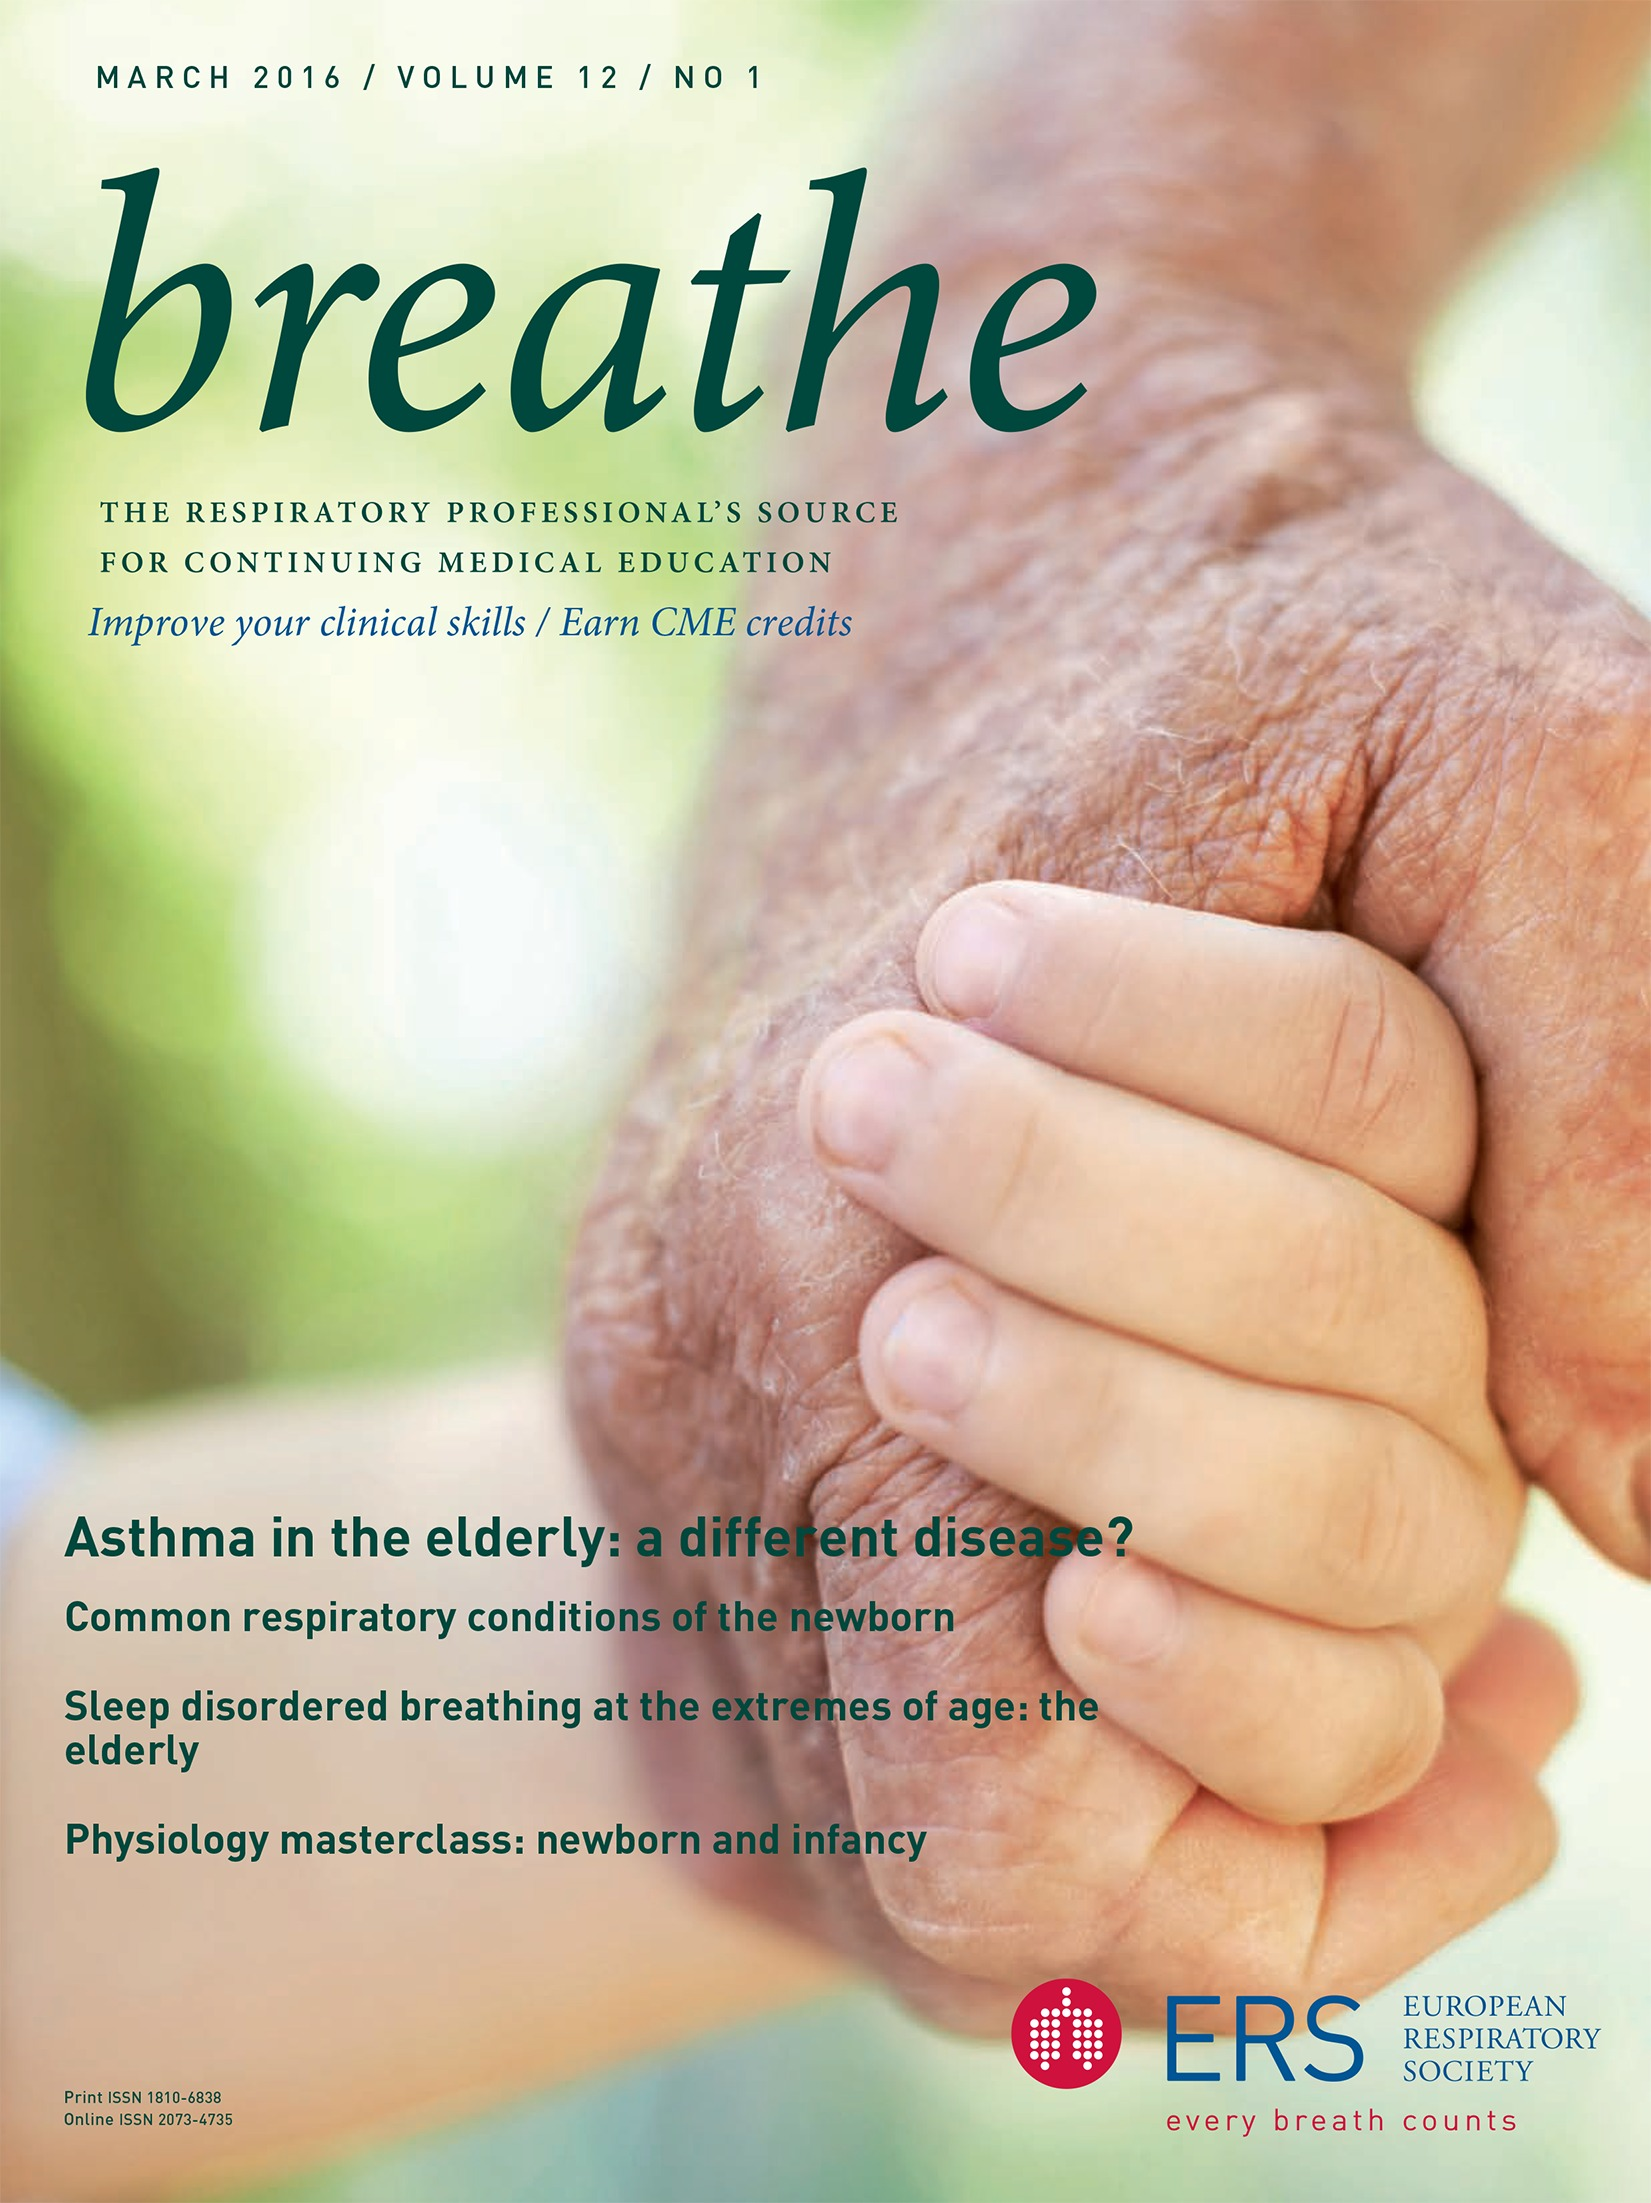 Asthma in the elderly: a different disease? | European